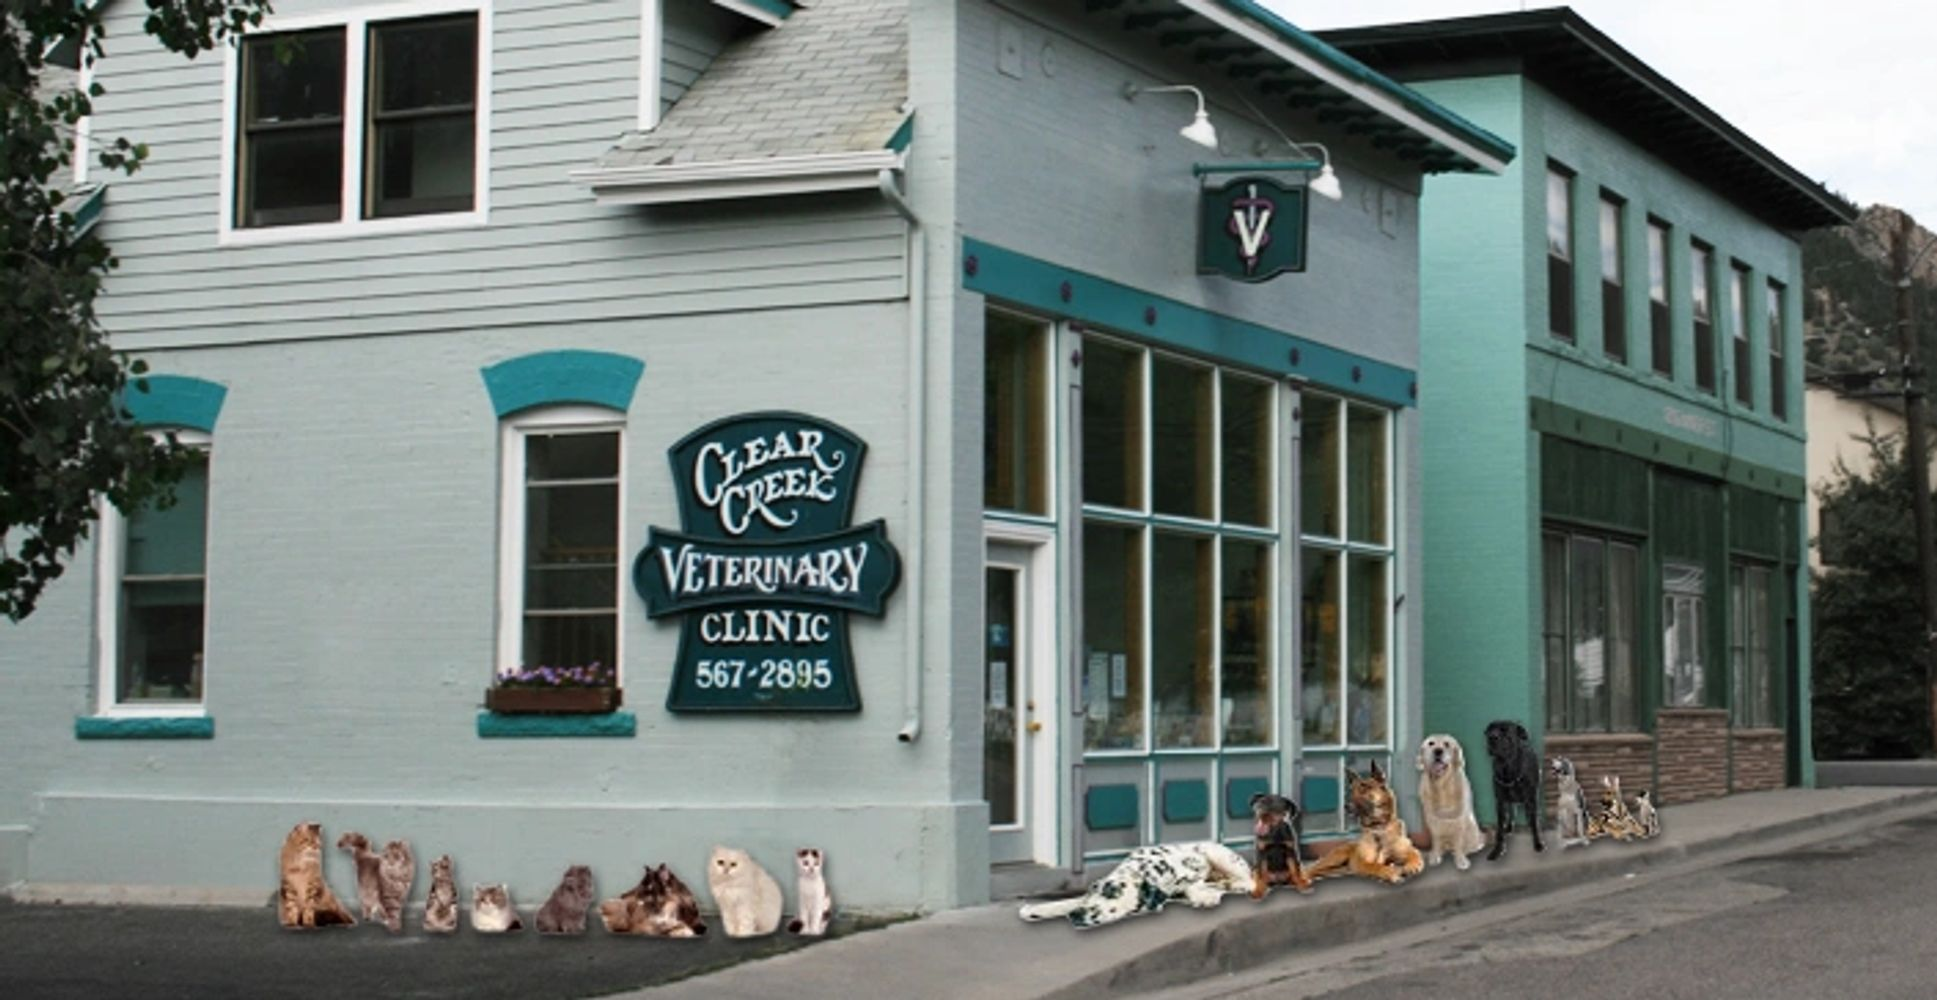 Photo of pets lined up outside Clear Creek Veterinary Clinic in Idaho Springs Colorado